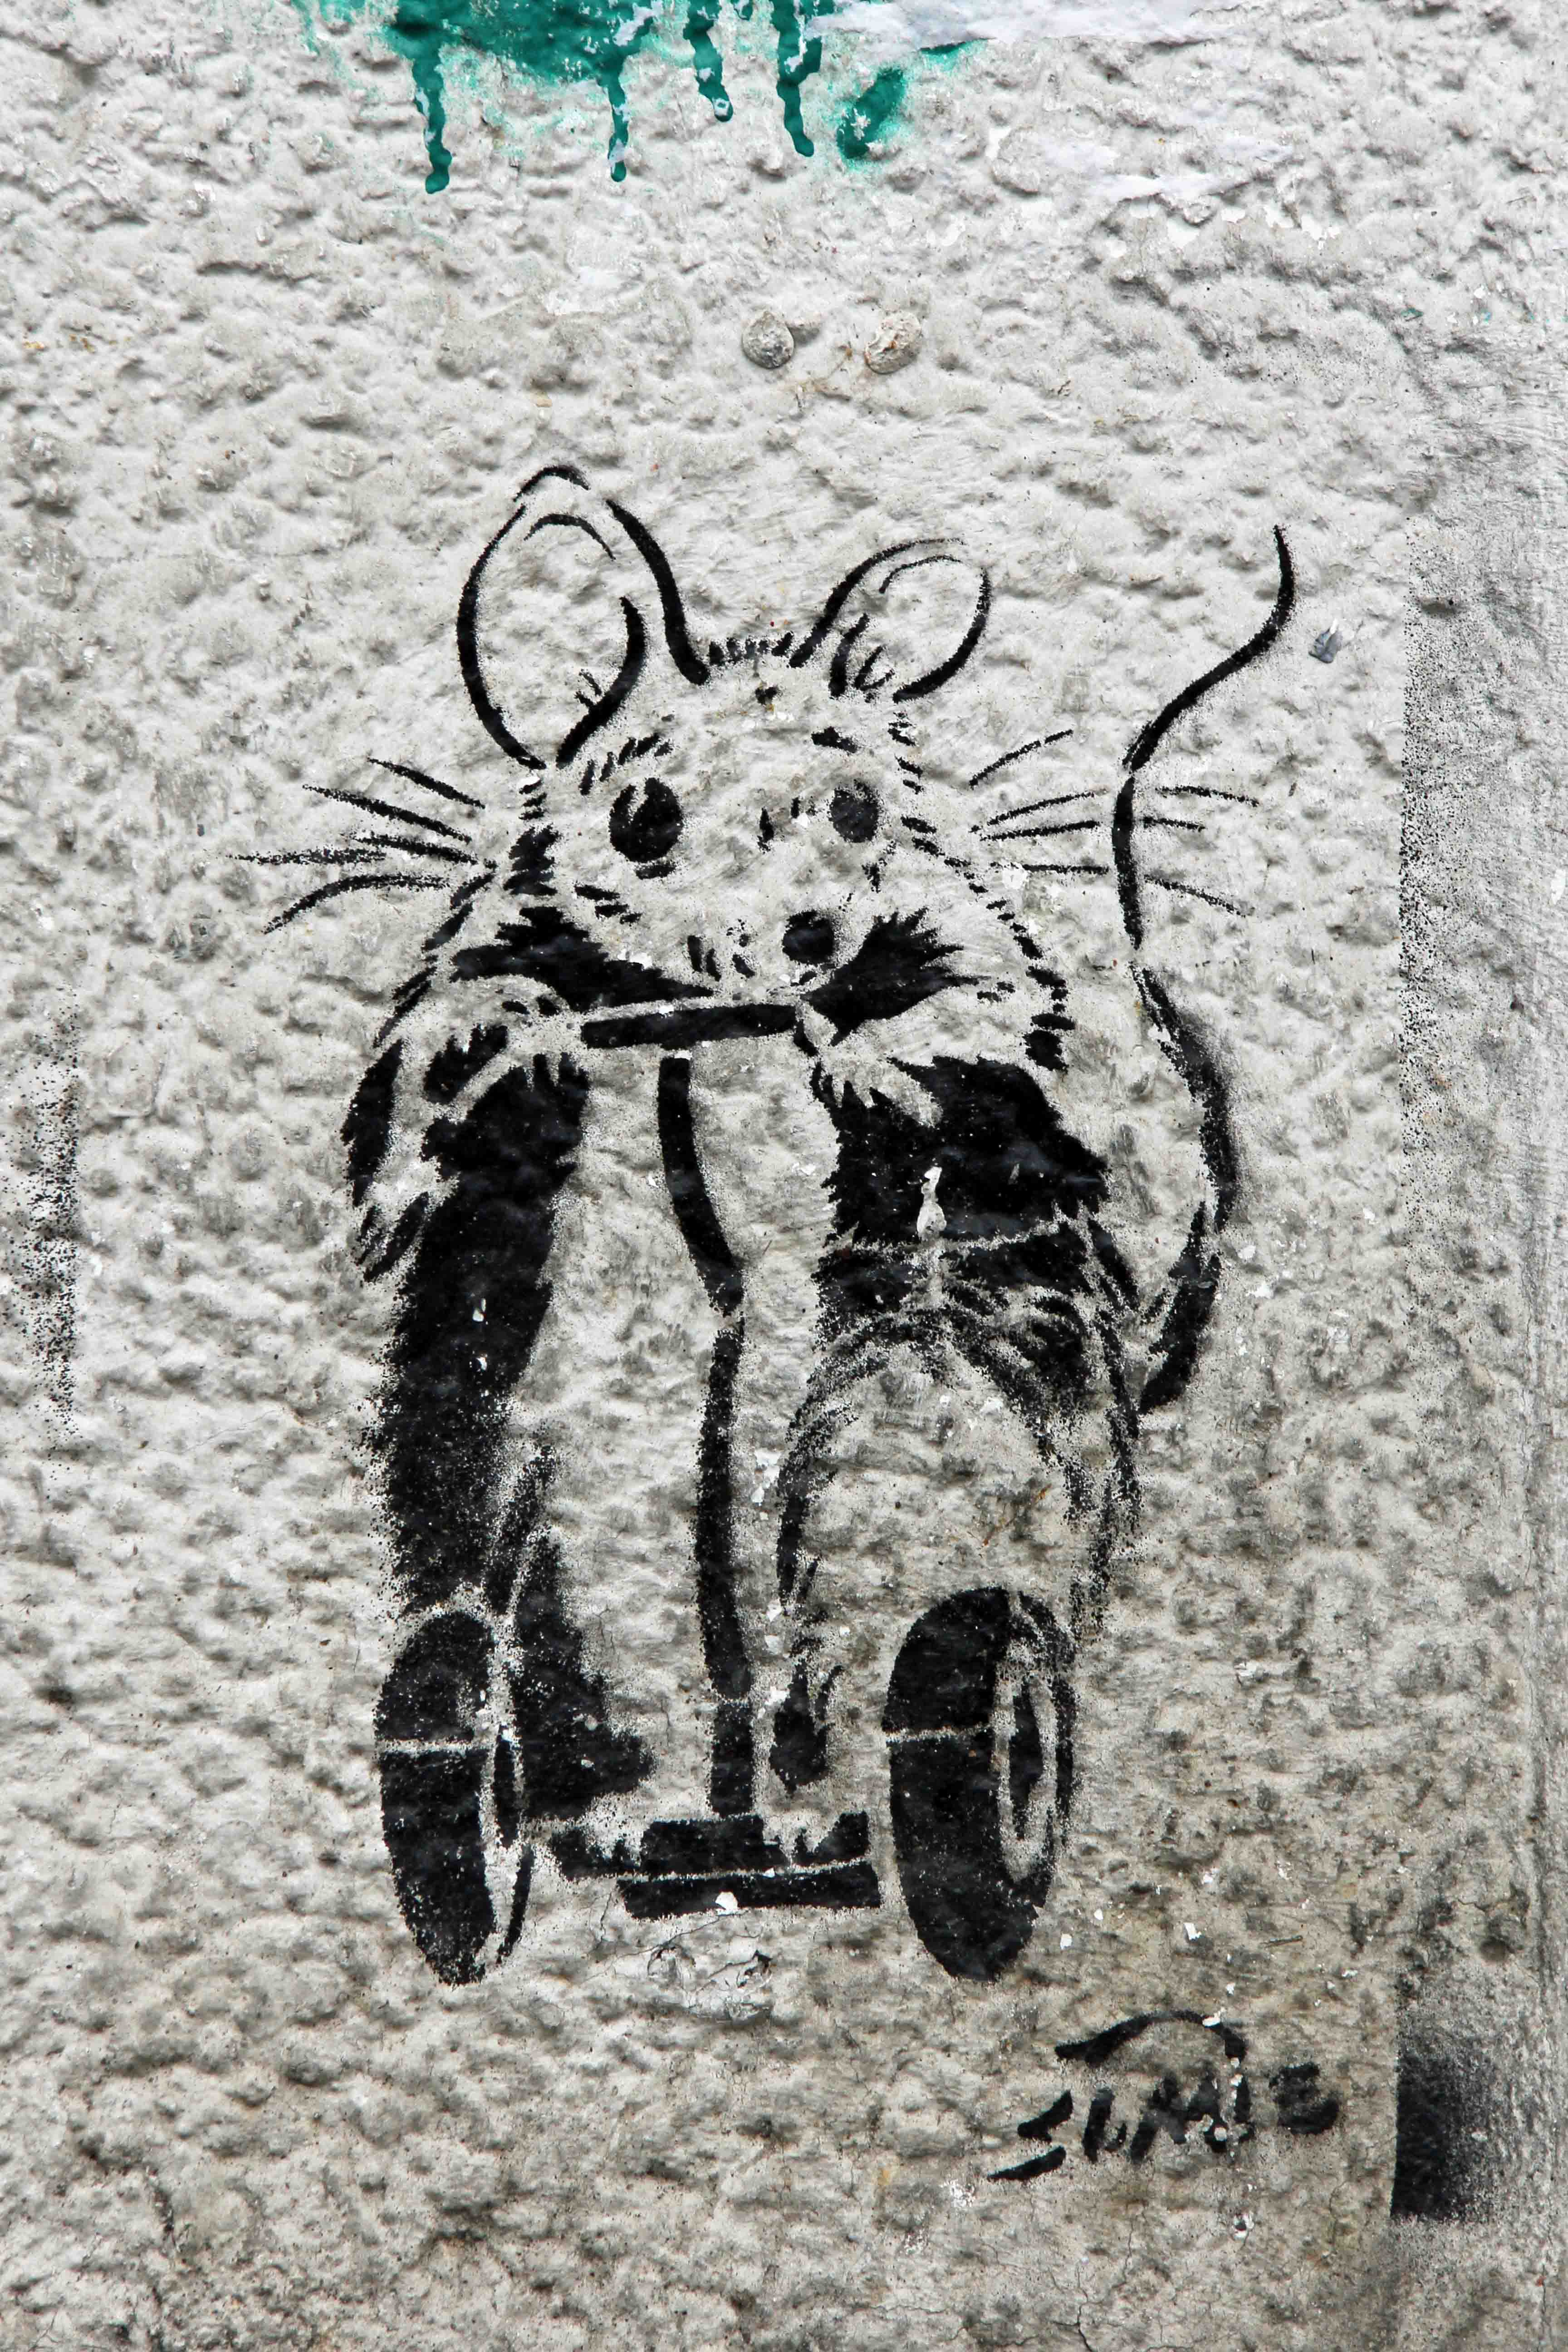 Mouse on Segway - Street Art by Unknown Artist in Berlin